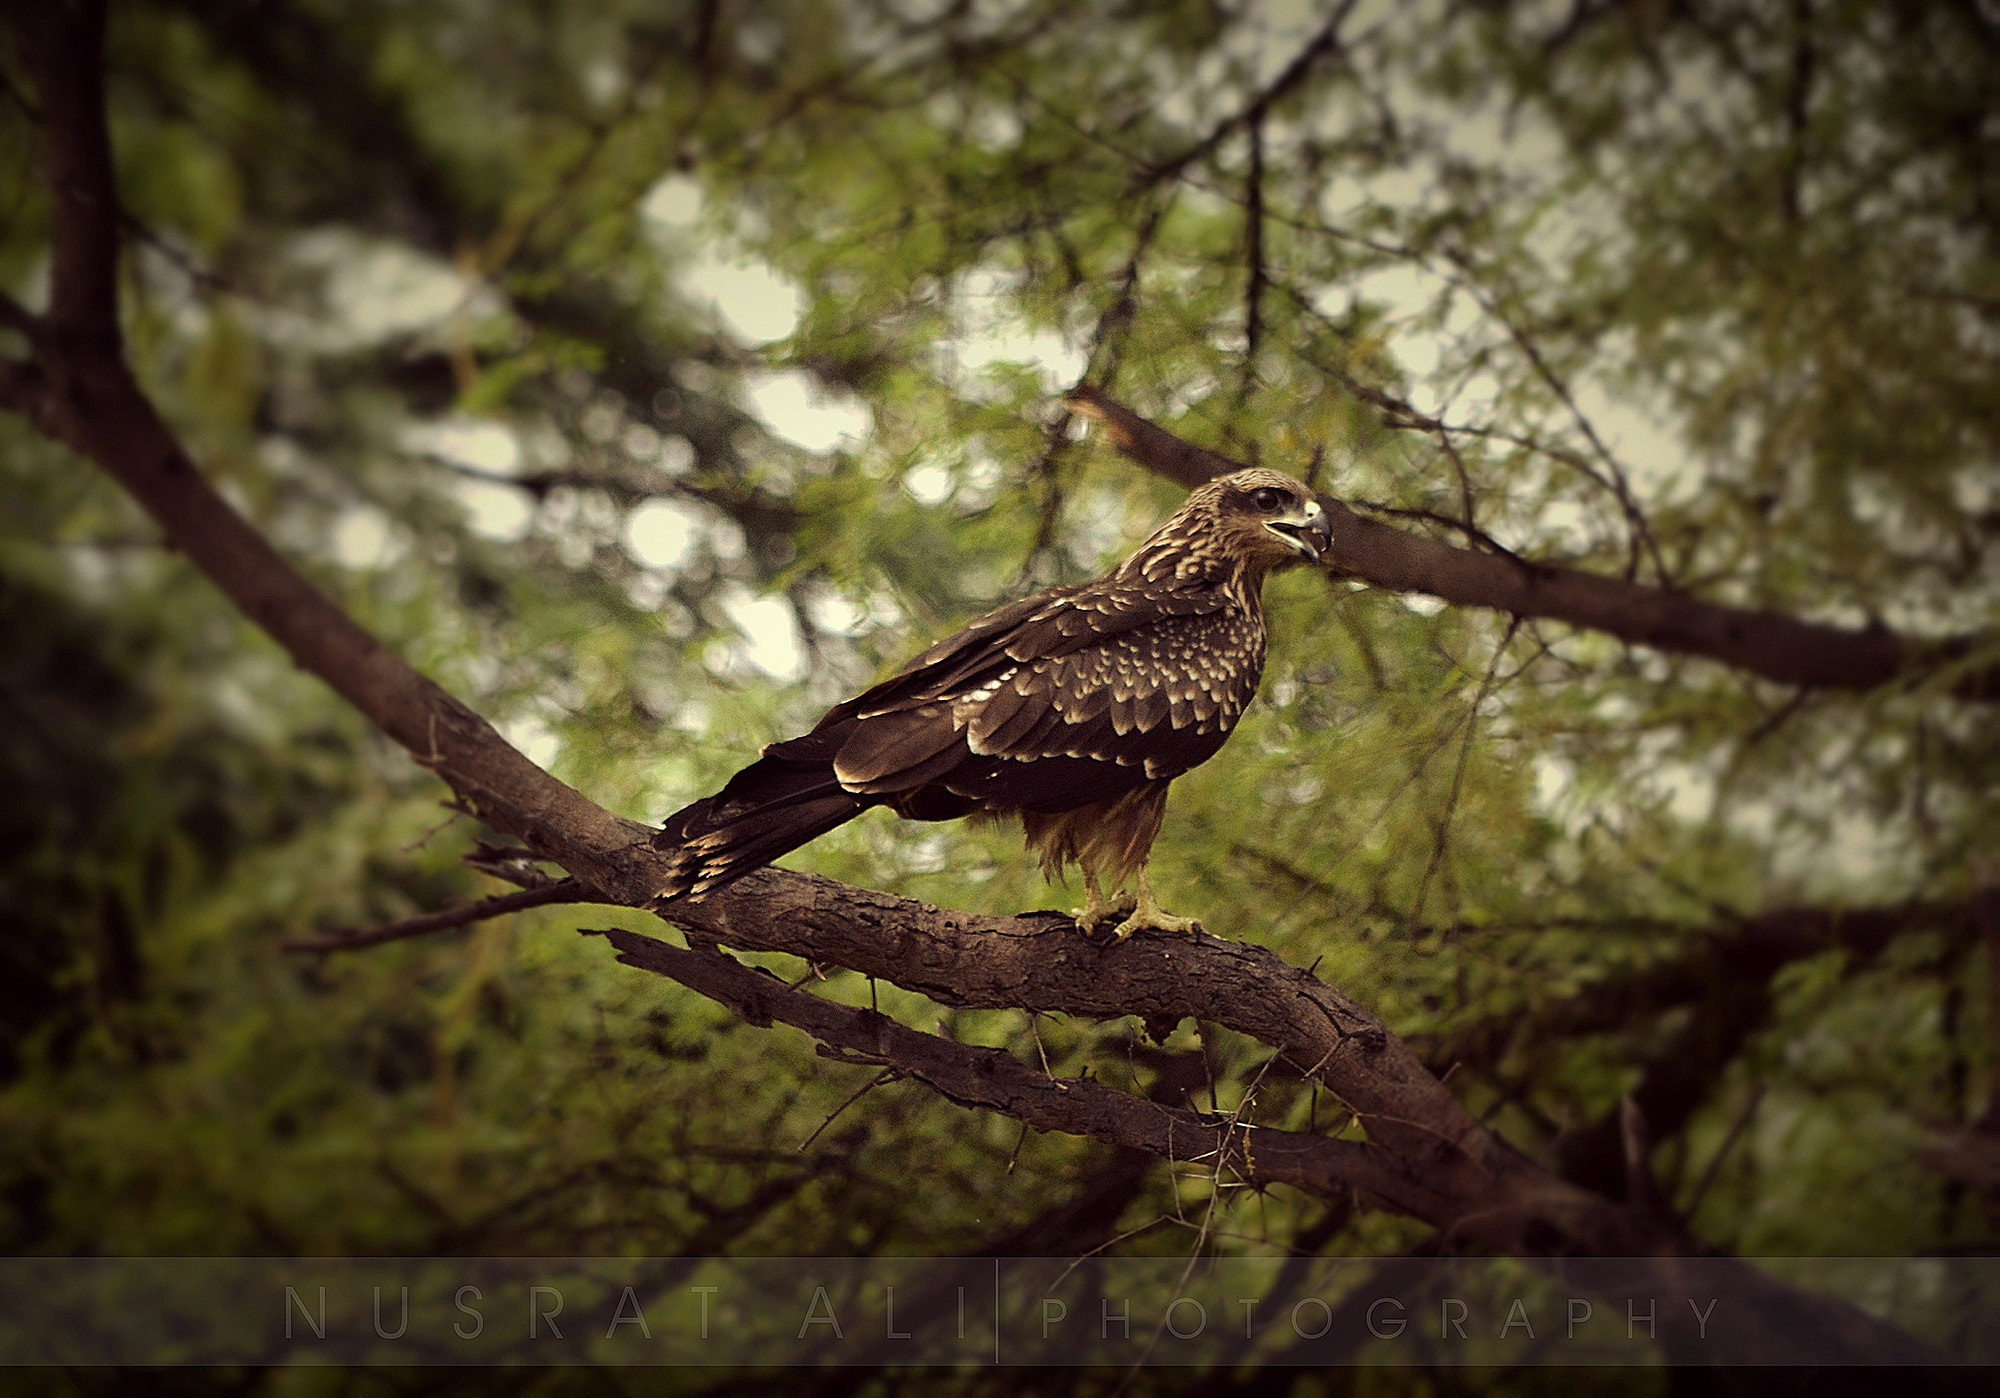 Photograph Eagle by Nusrat Ali on 500px